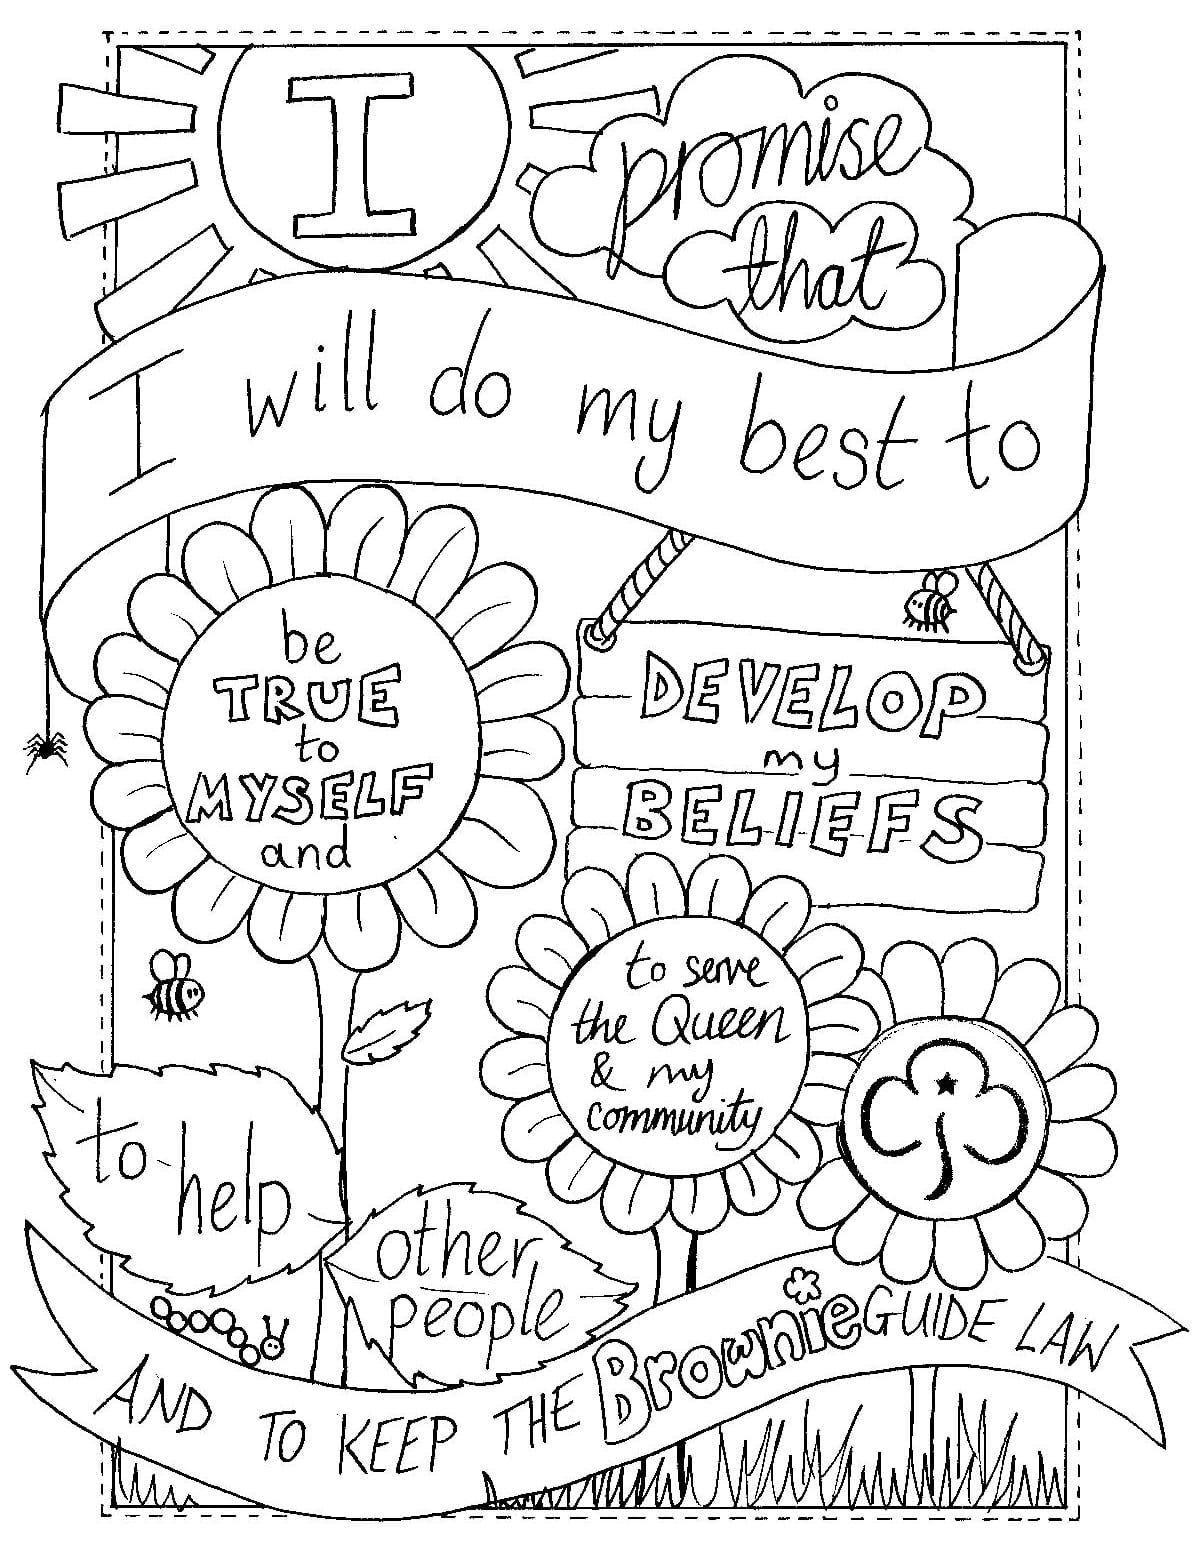 Girl Scout Law Coloring Pages Newyork Rp Com And Faba Me  Girl